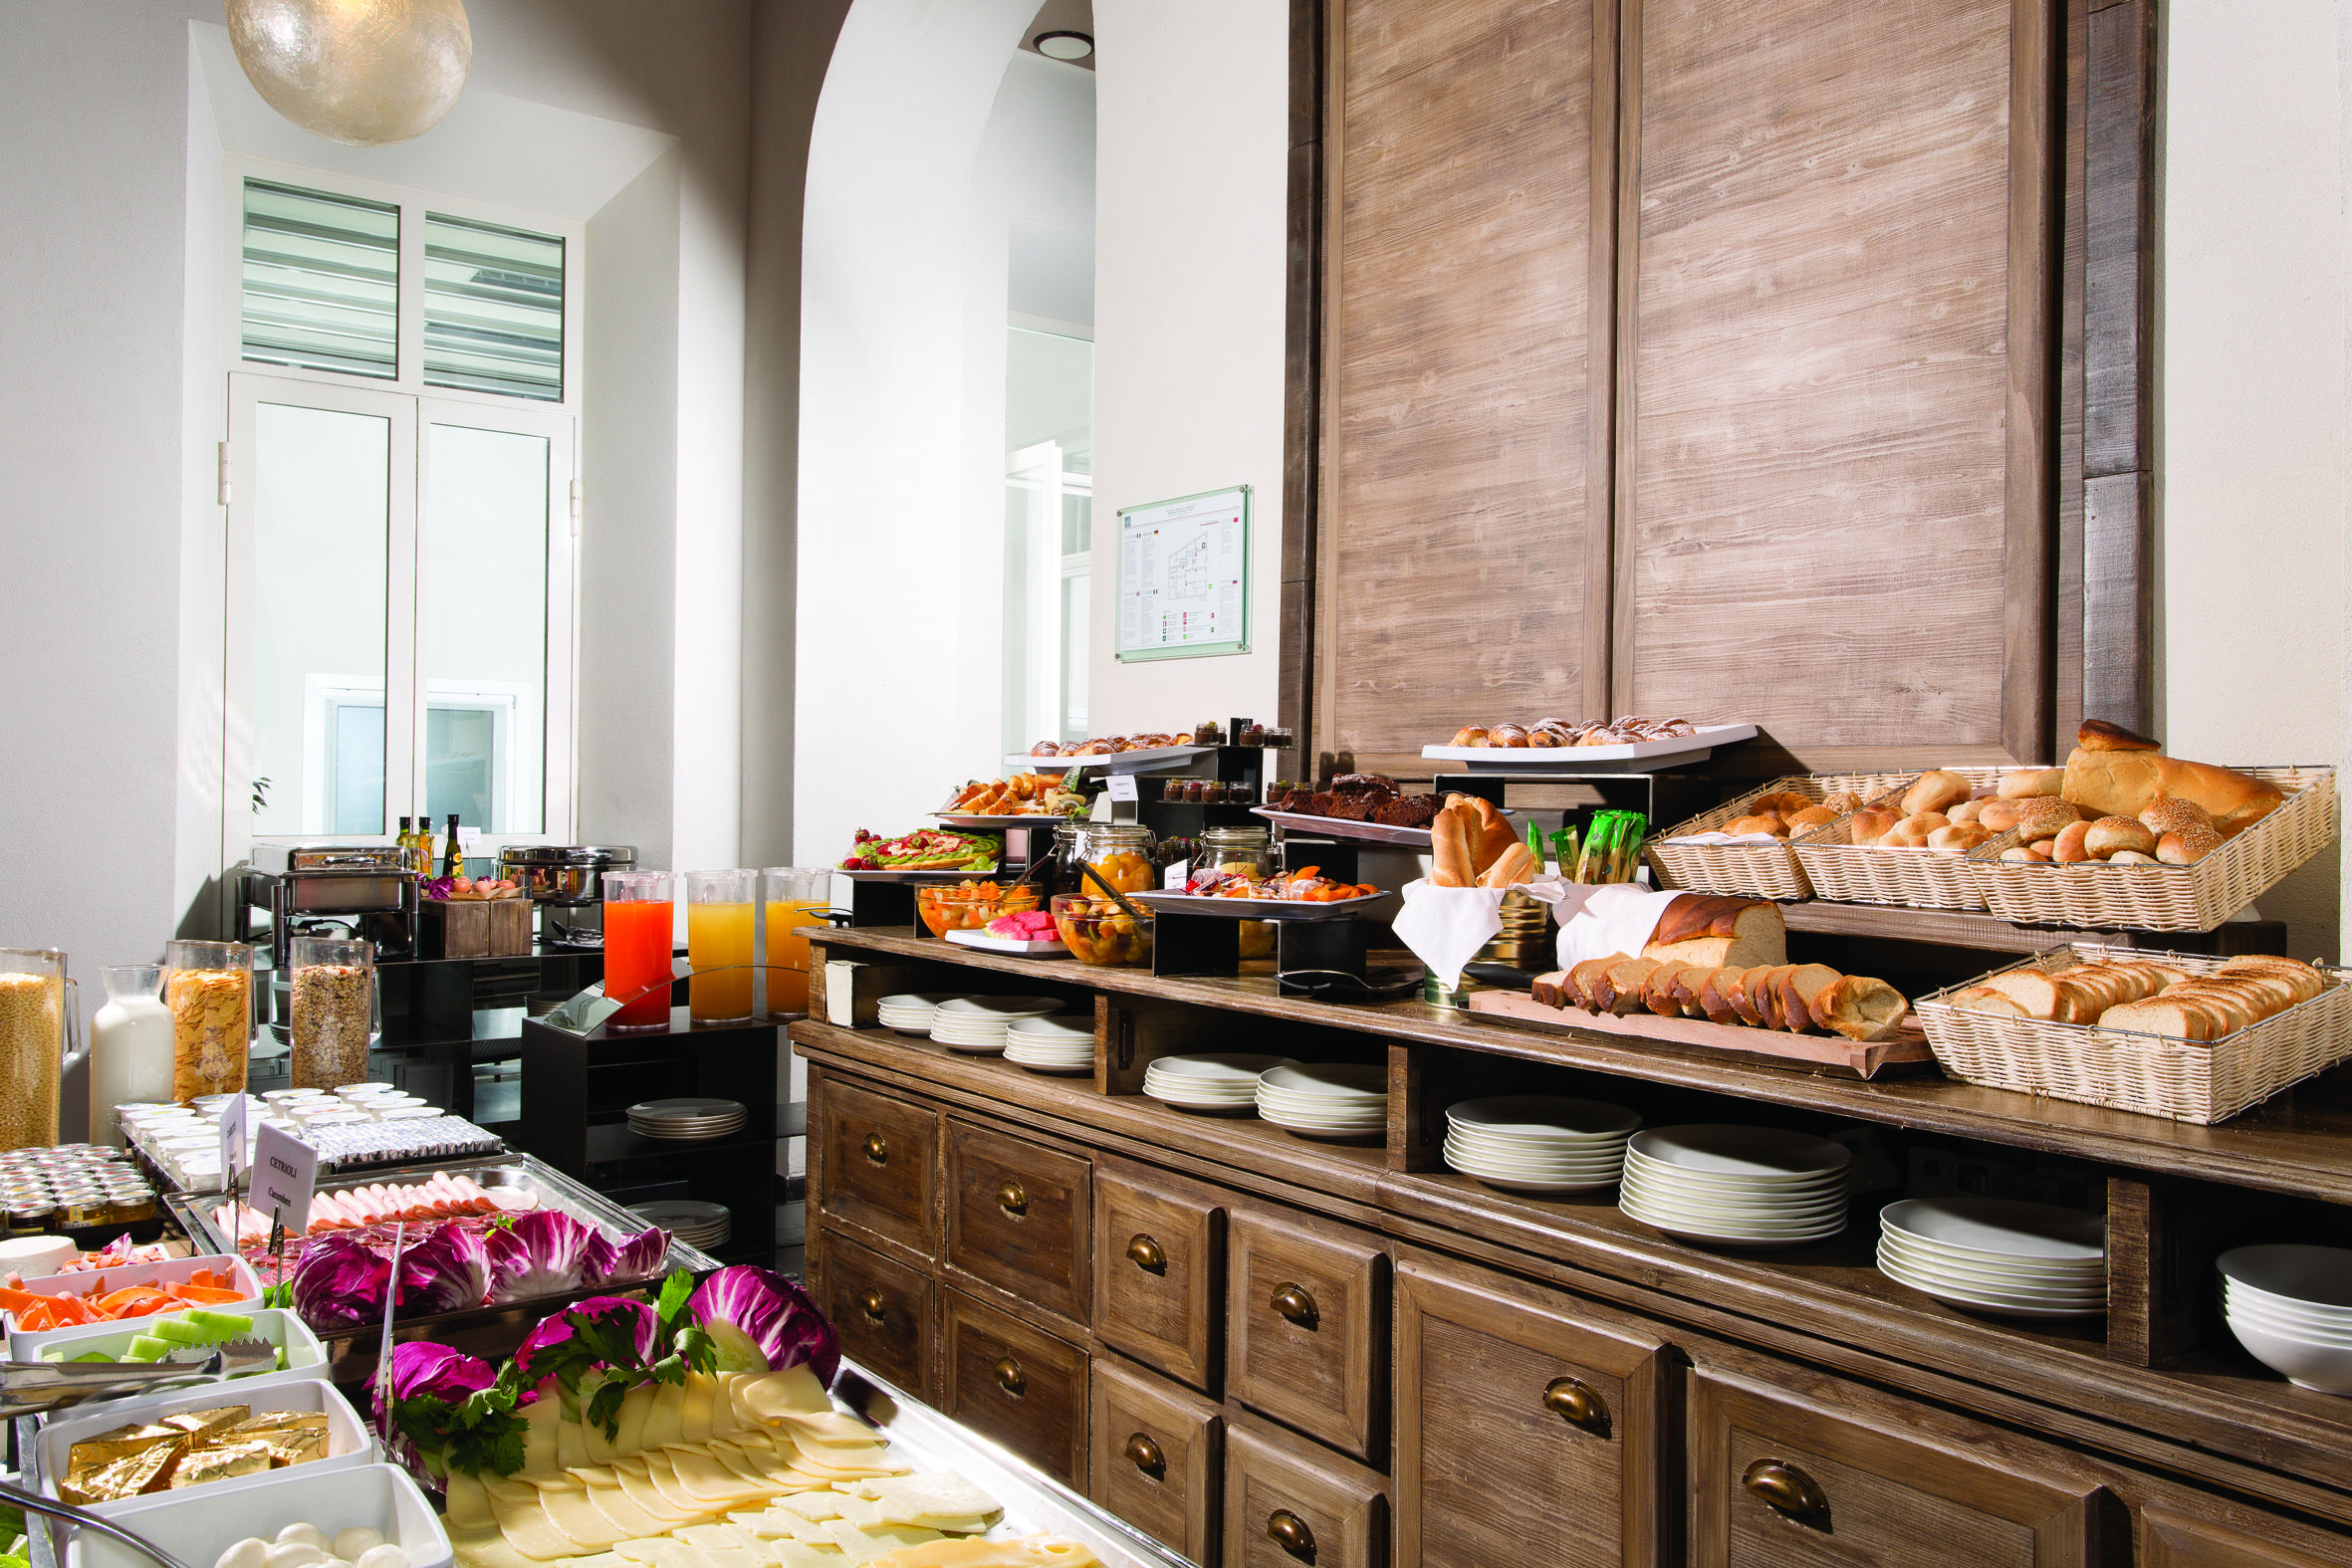 Buffet Cuisine Design Breakfast Buffet The Hotel Pinterest Breakfast